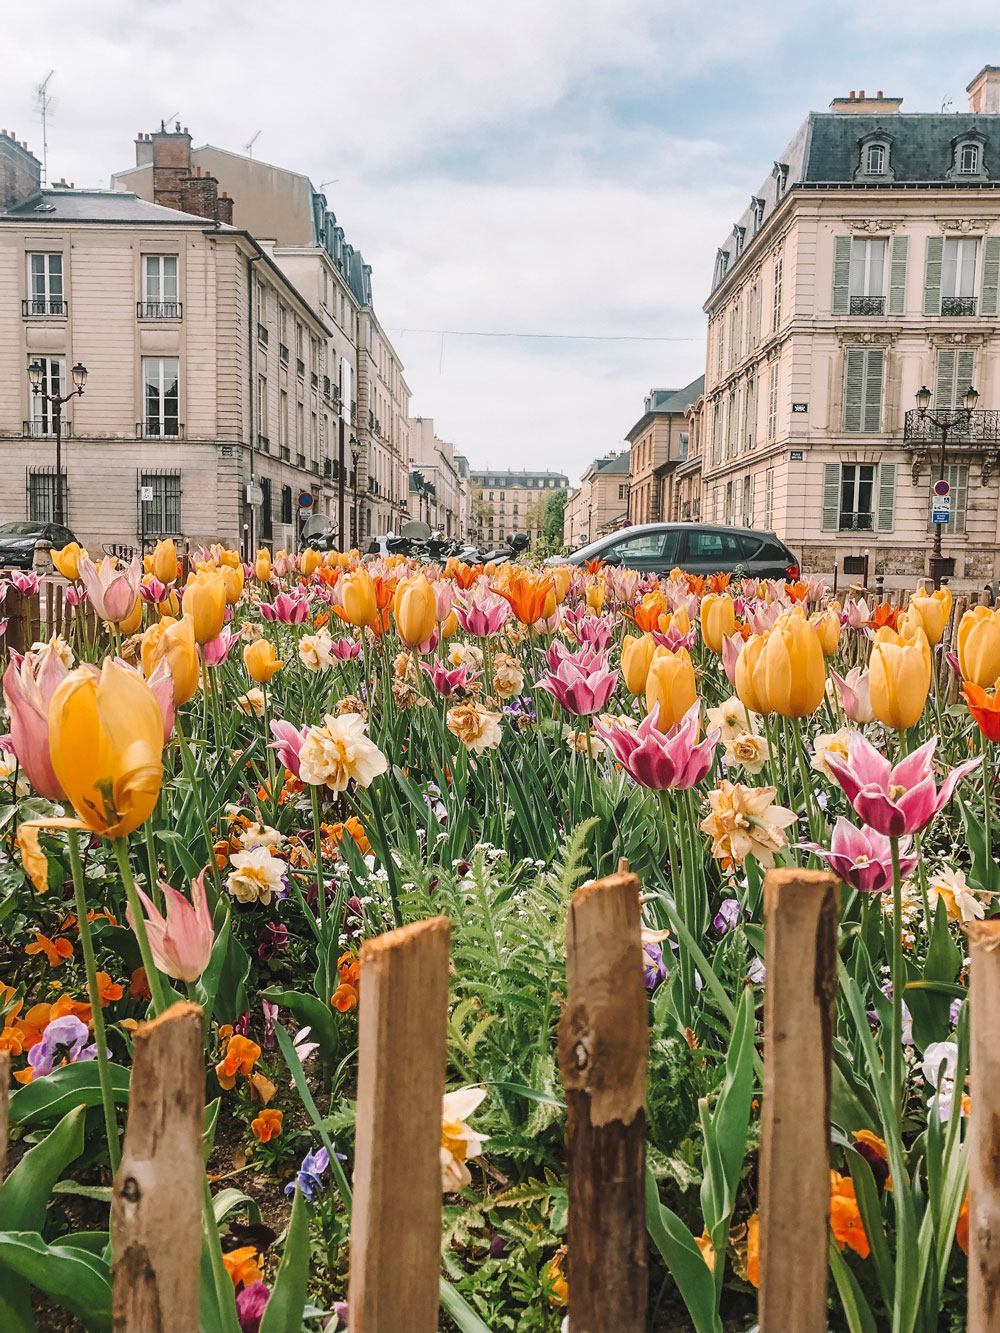 April in Paris with tulips